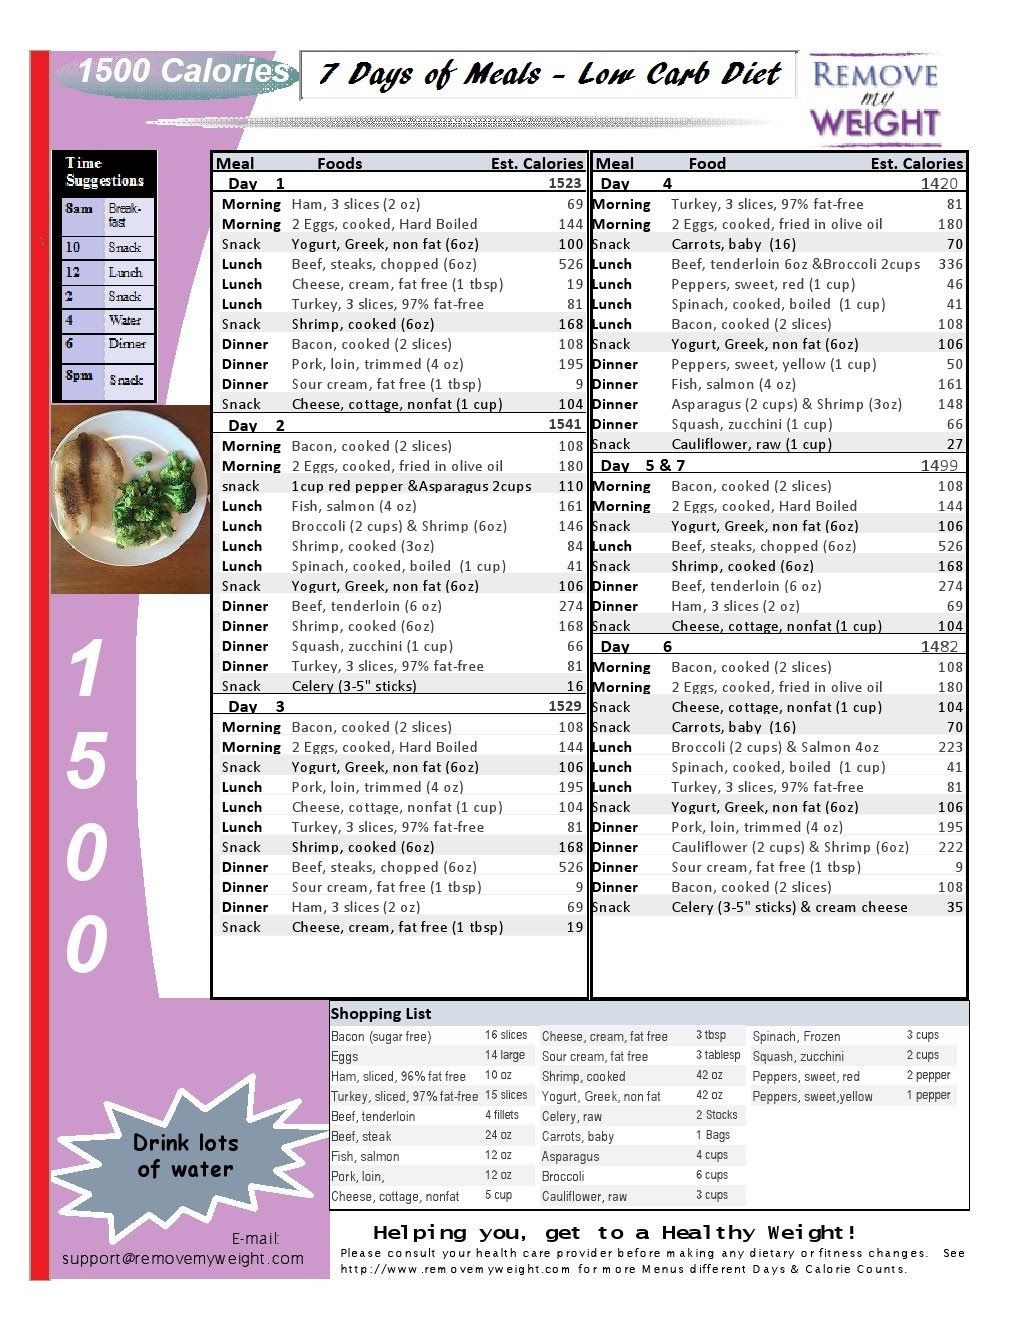 Printable Low Carb Diet: 1 Week -1500 Calorie Menu Plan ...